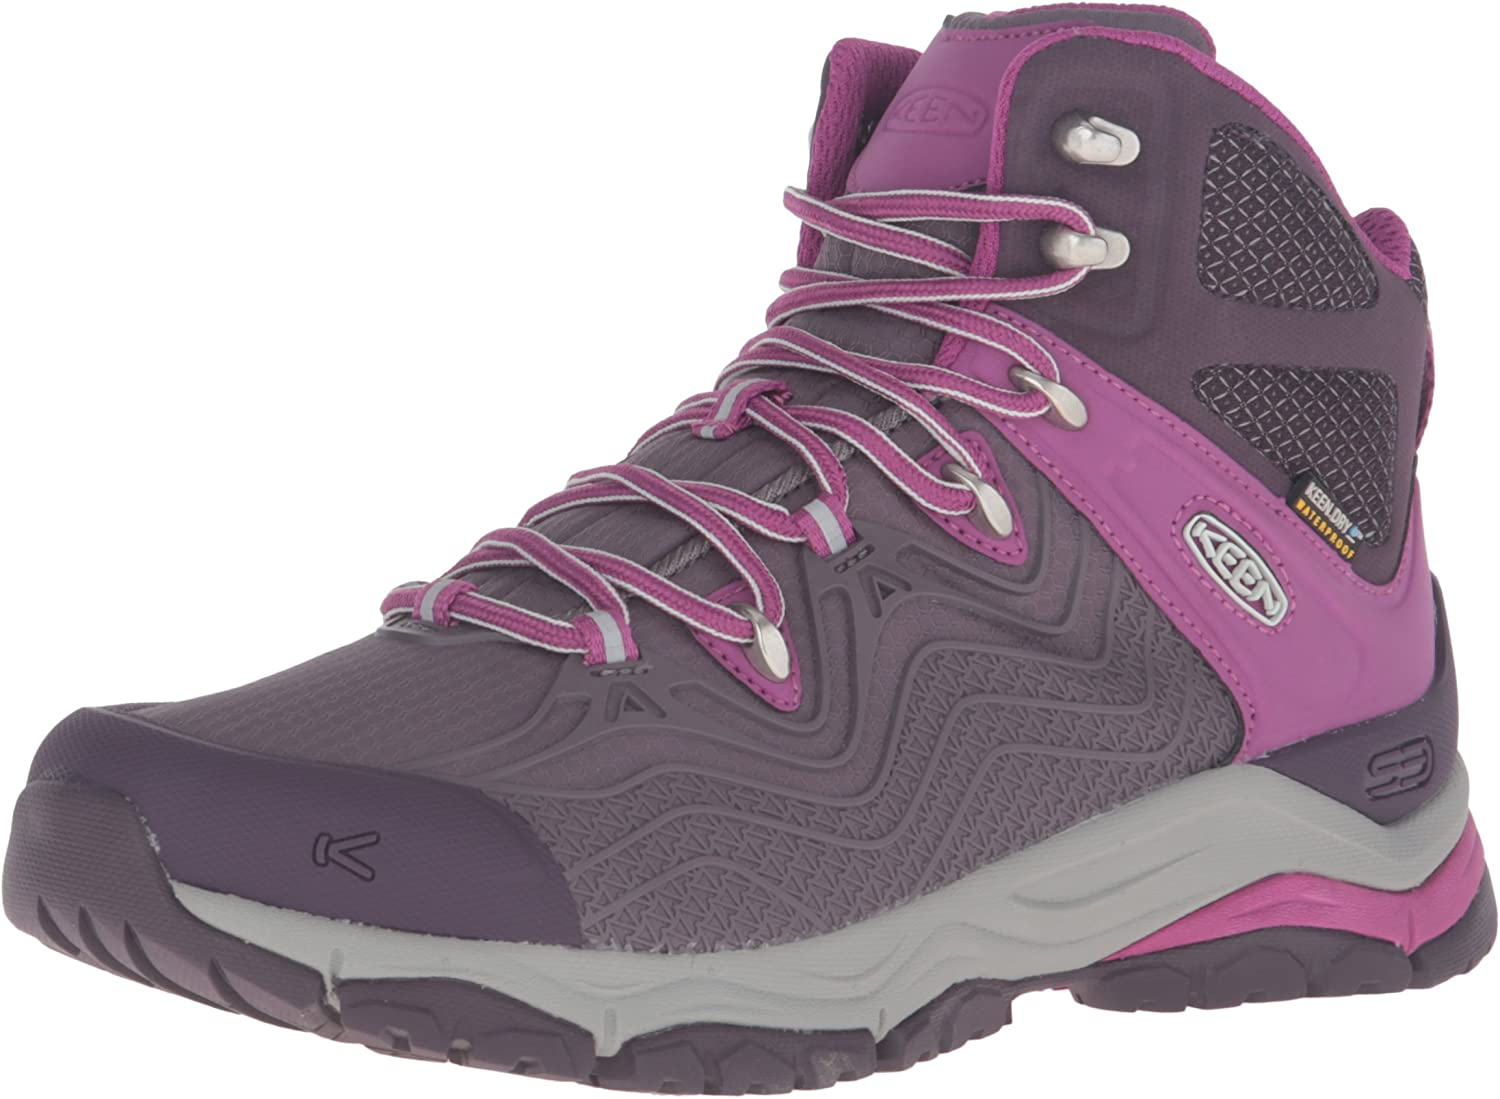 KEEN Women's Aphlex Mid WP Hiking Boots